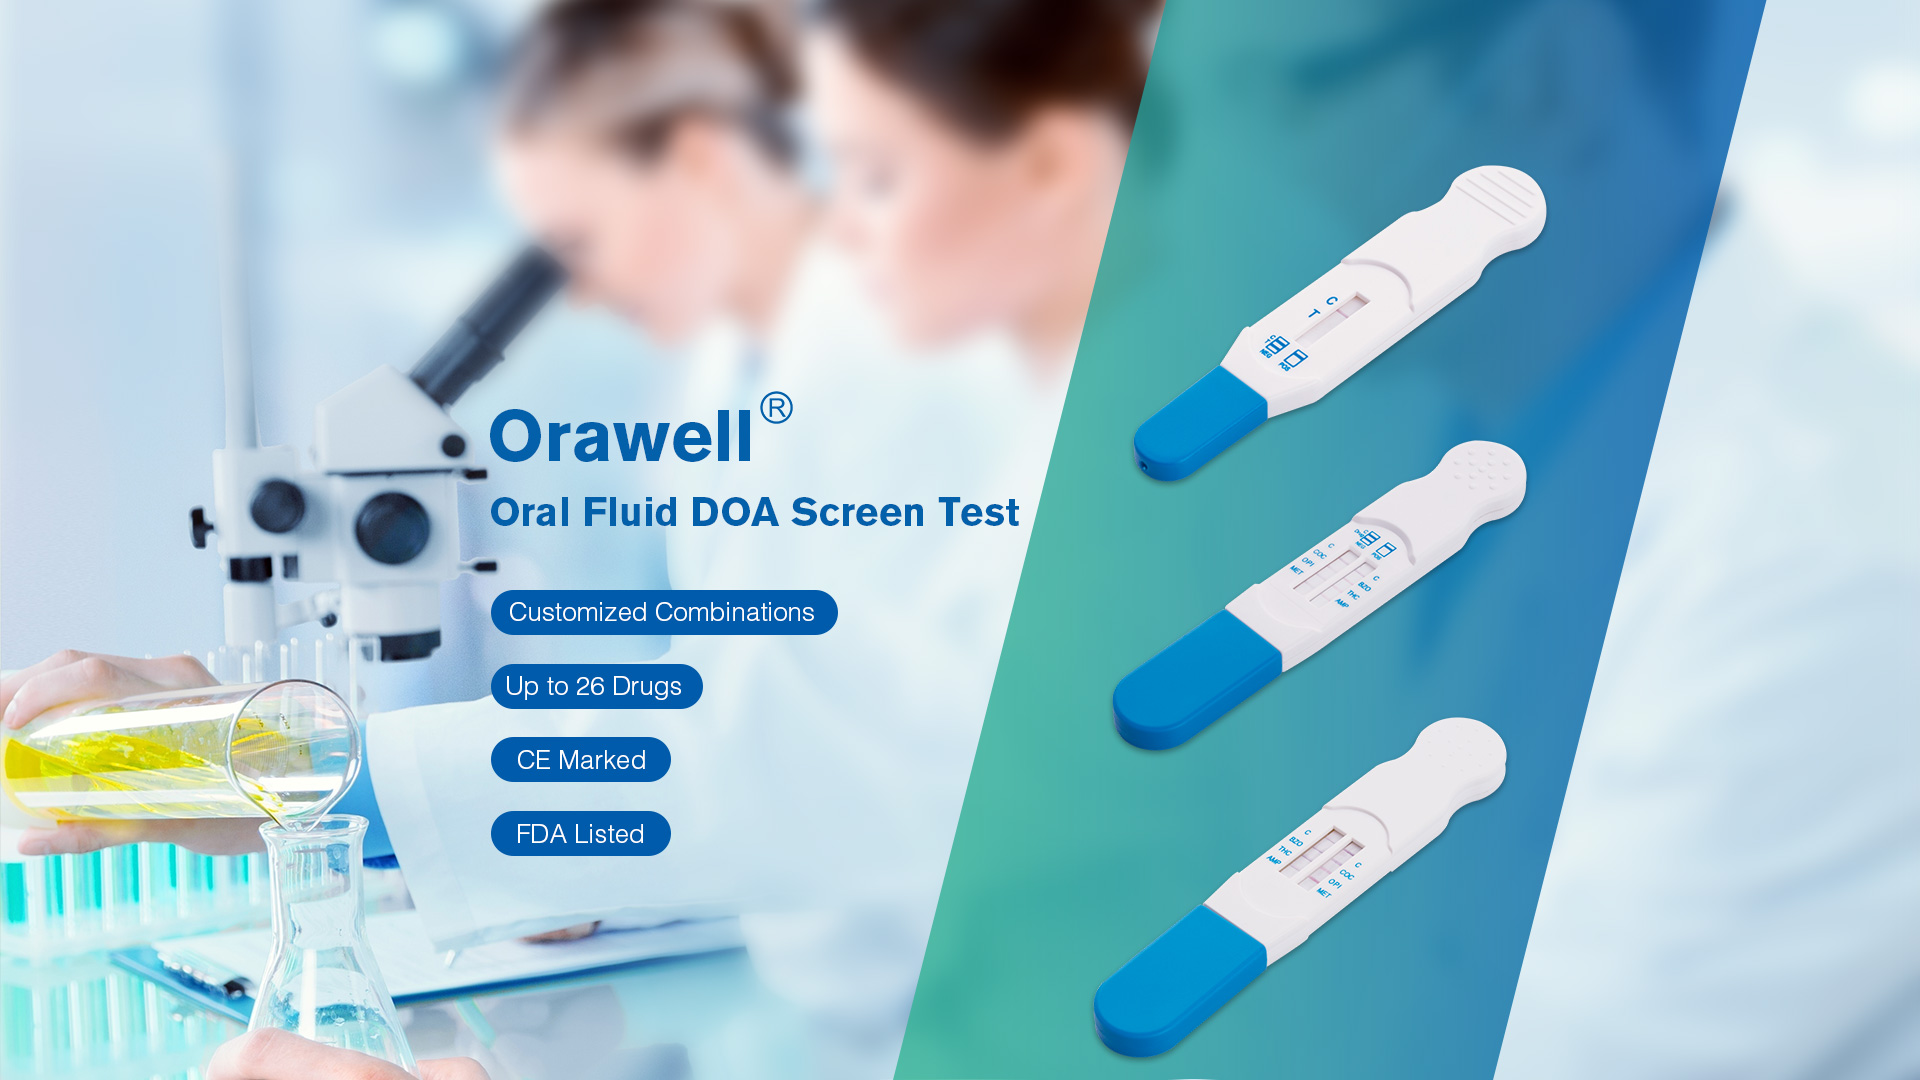 Orawell Oral Fluid DOA Screen Test